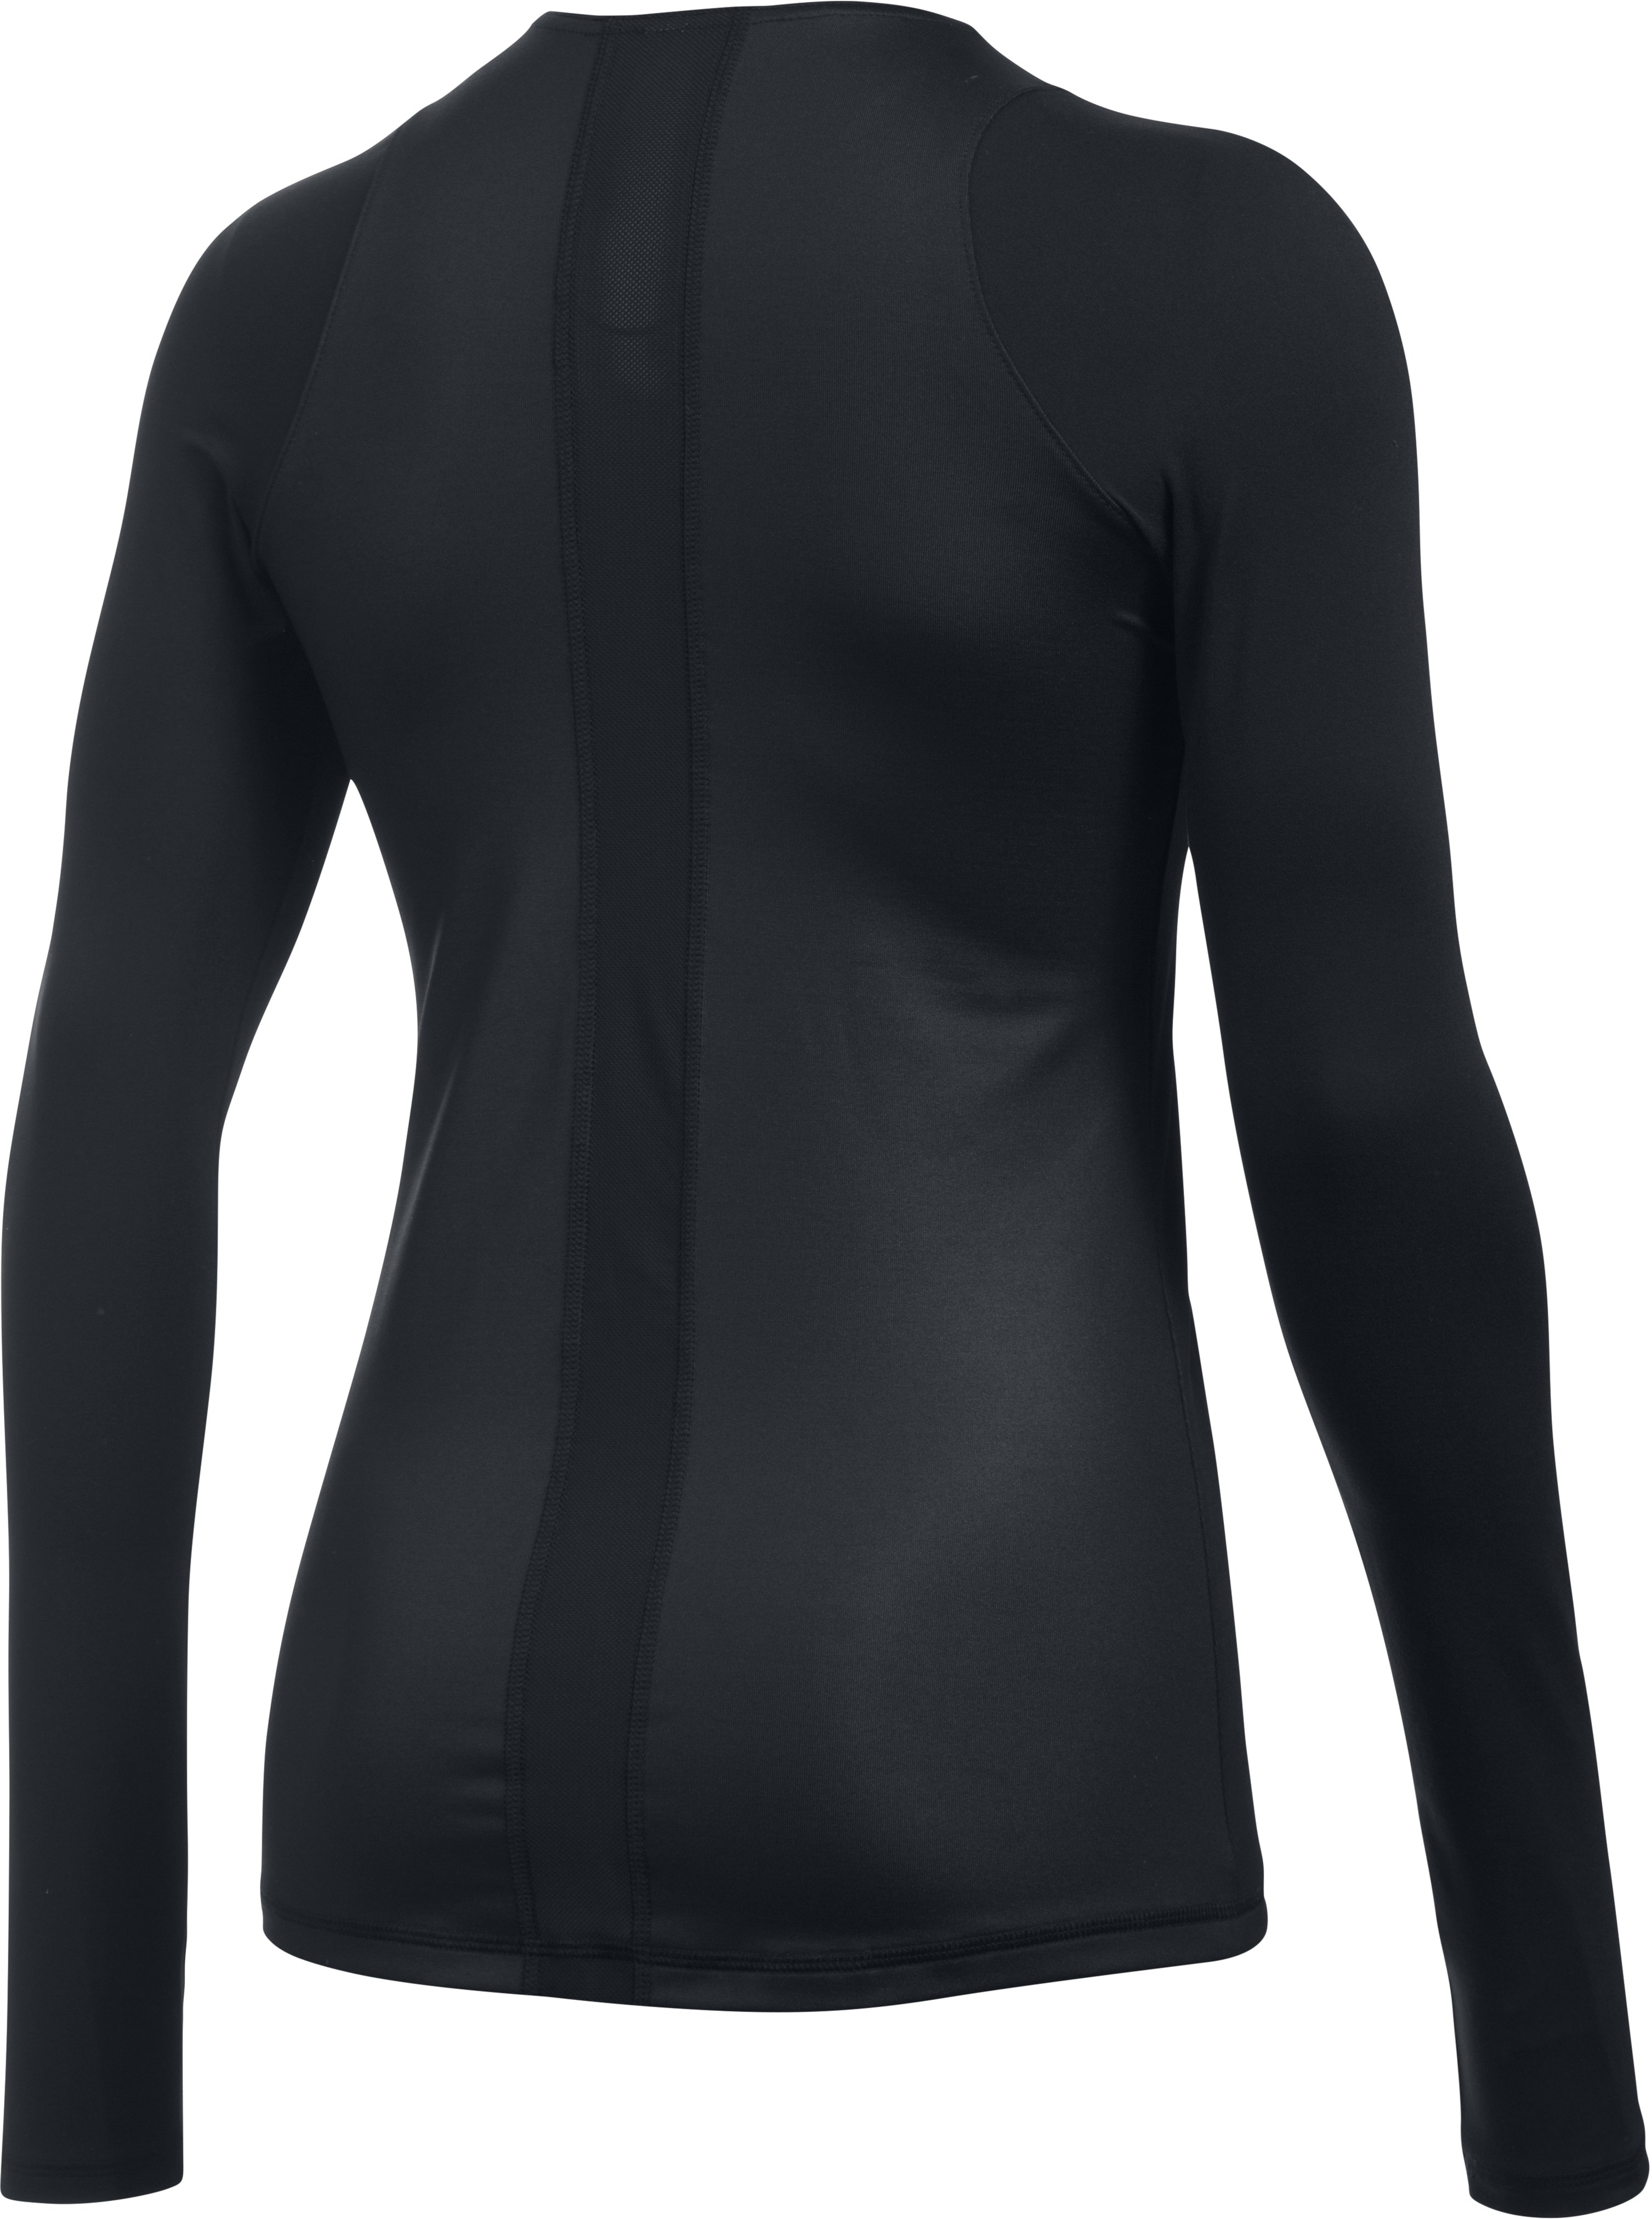 Women's UA Mirror Shine Top, Black , undefined